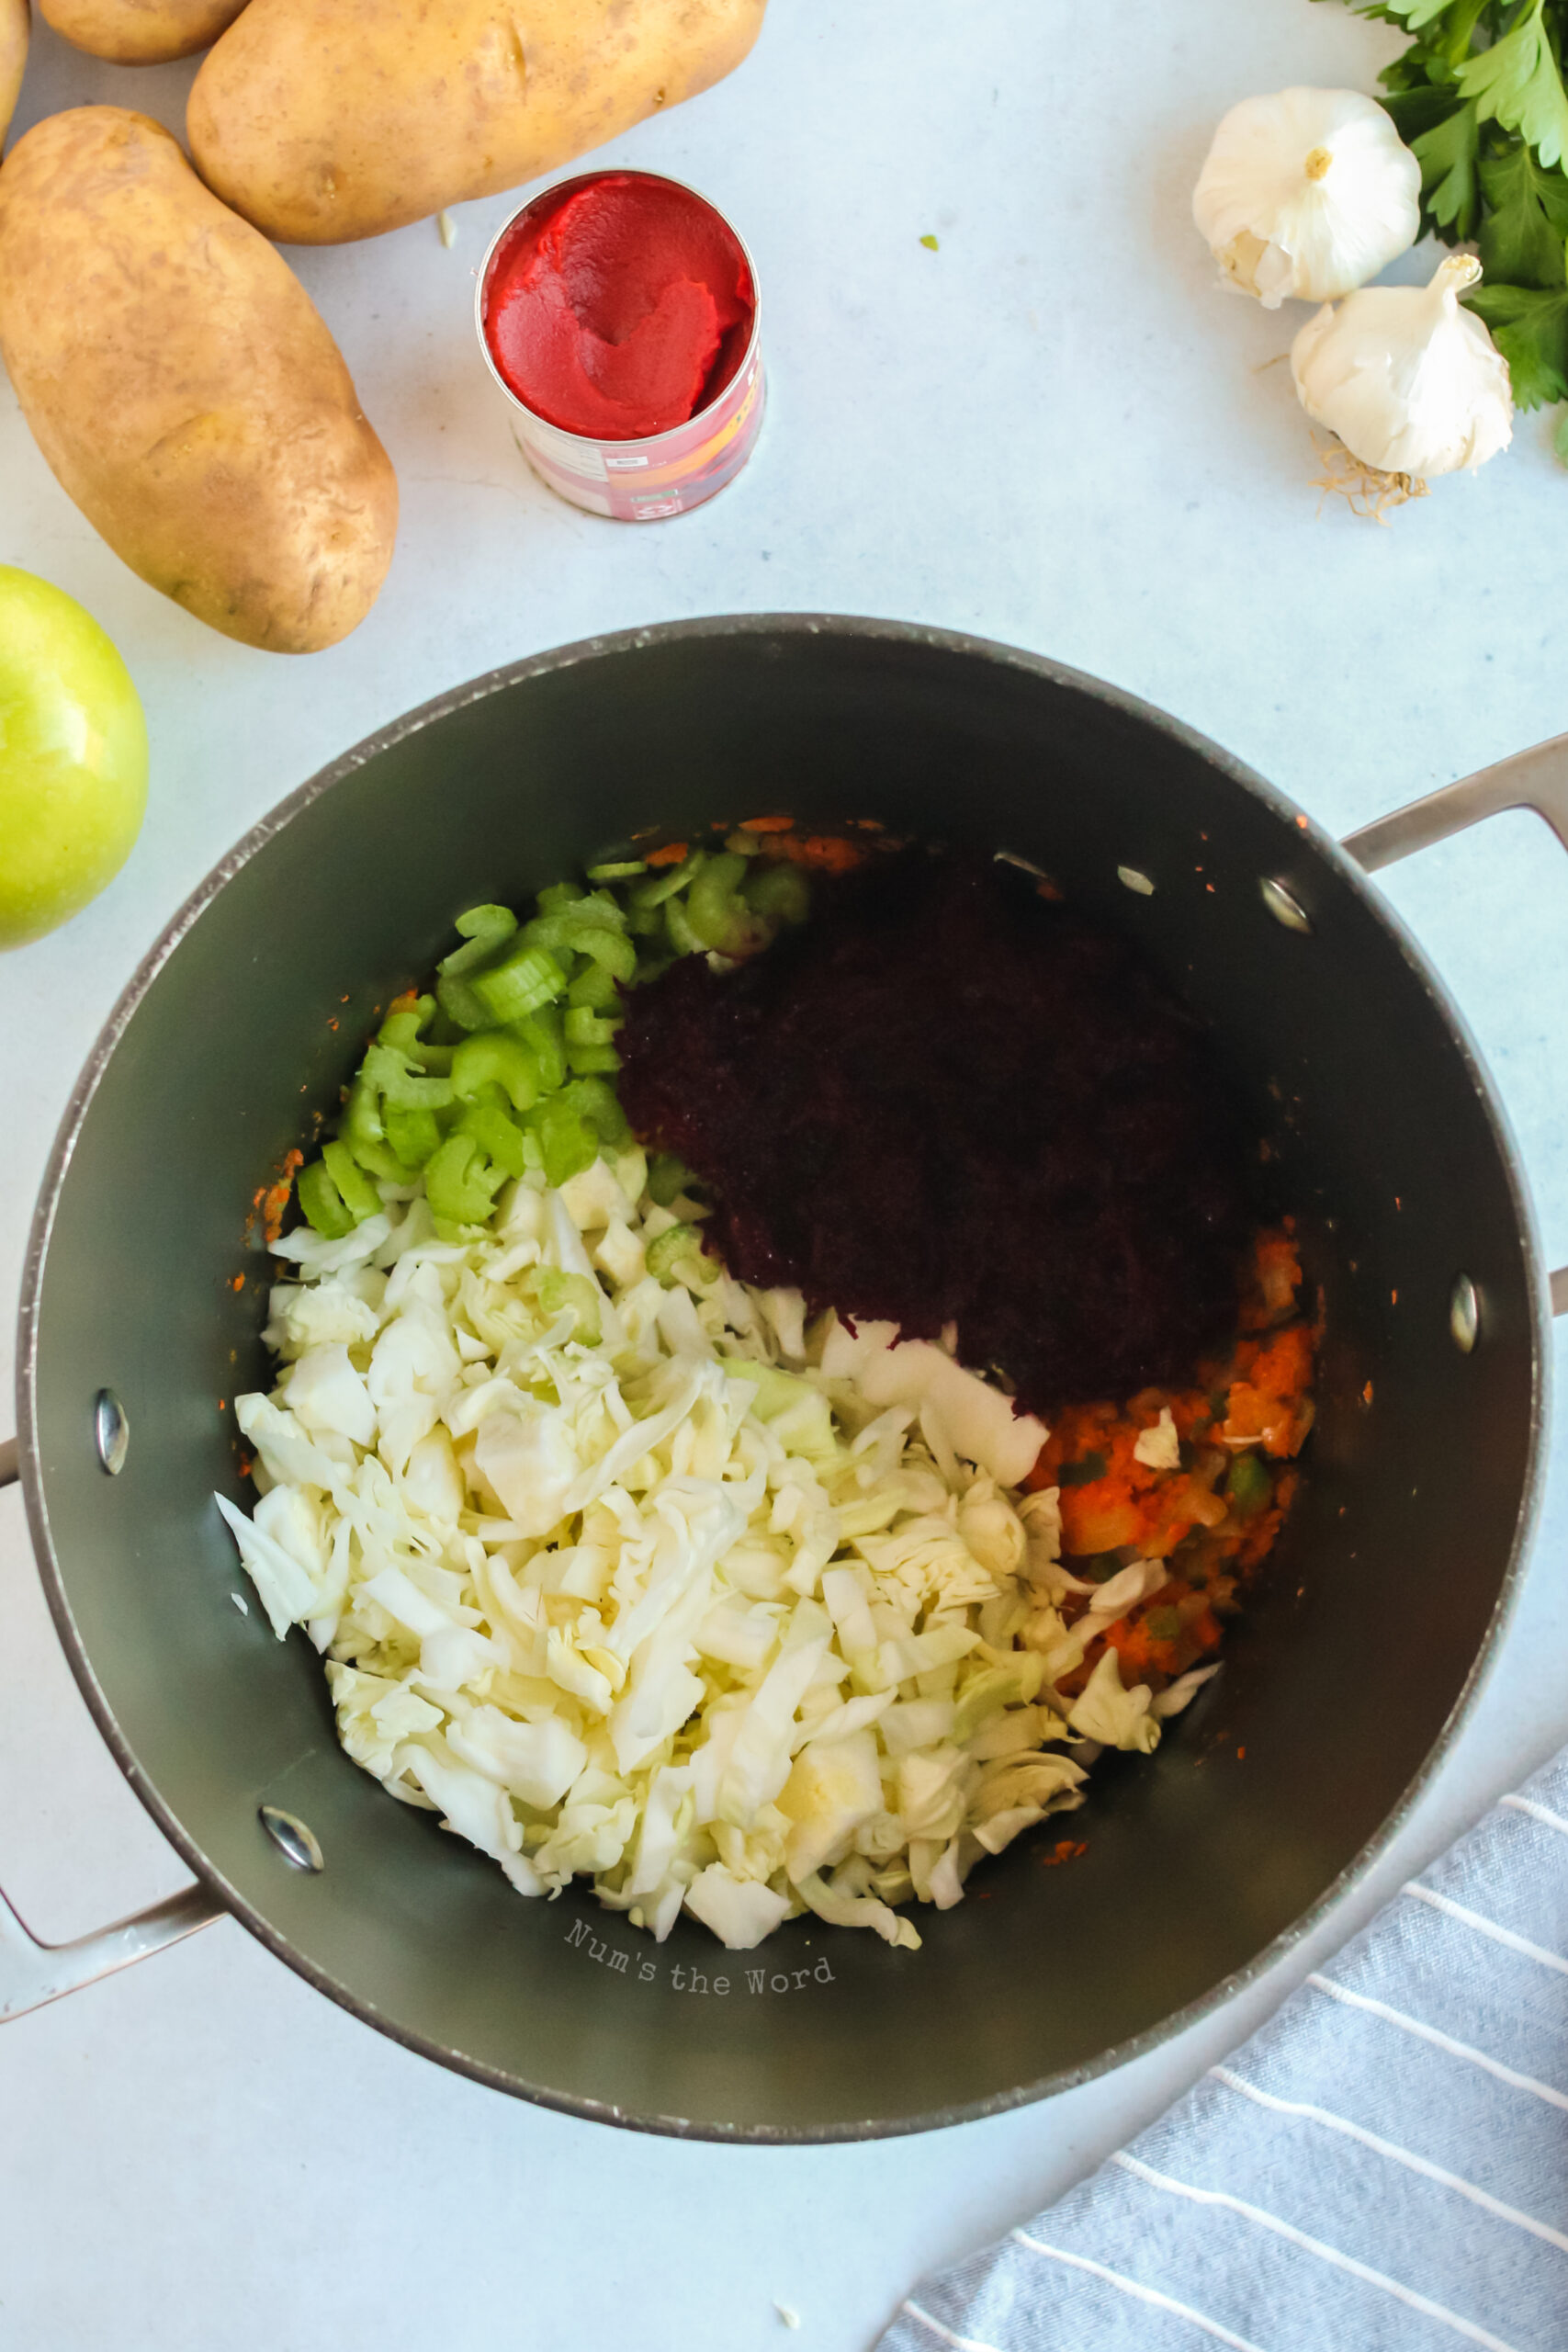 Cabbage, beet and celery added to butter mixture in borscht pot